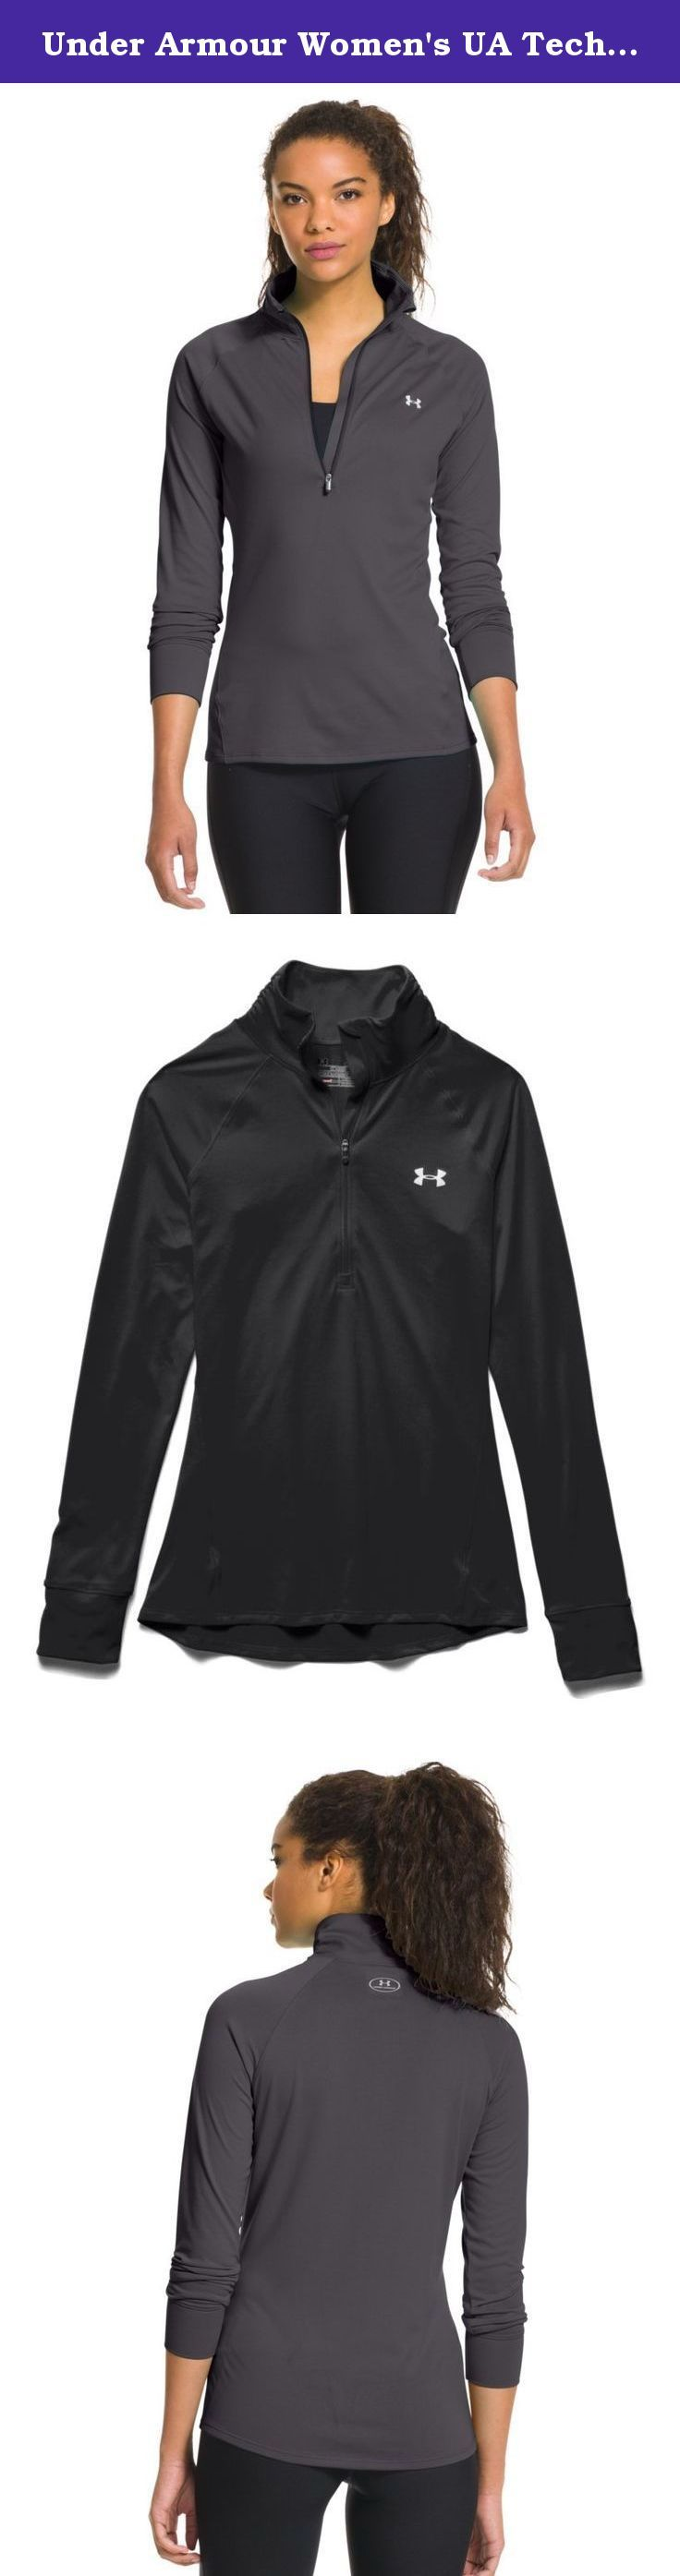 Under Armour Women's UA TechTM ½ Zip Large PHANTOM GRAY. Under Armour, Inc. is an American sports clothing and accessories company. The company is a supplier of sportswear and casual apparel.